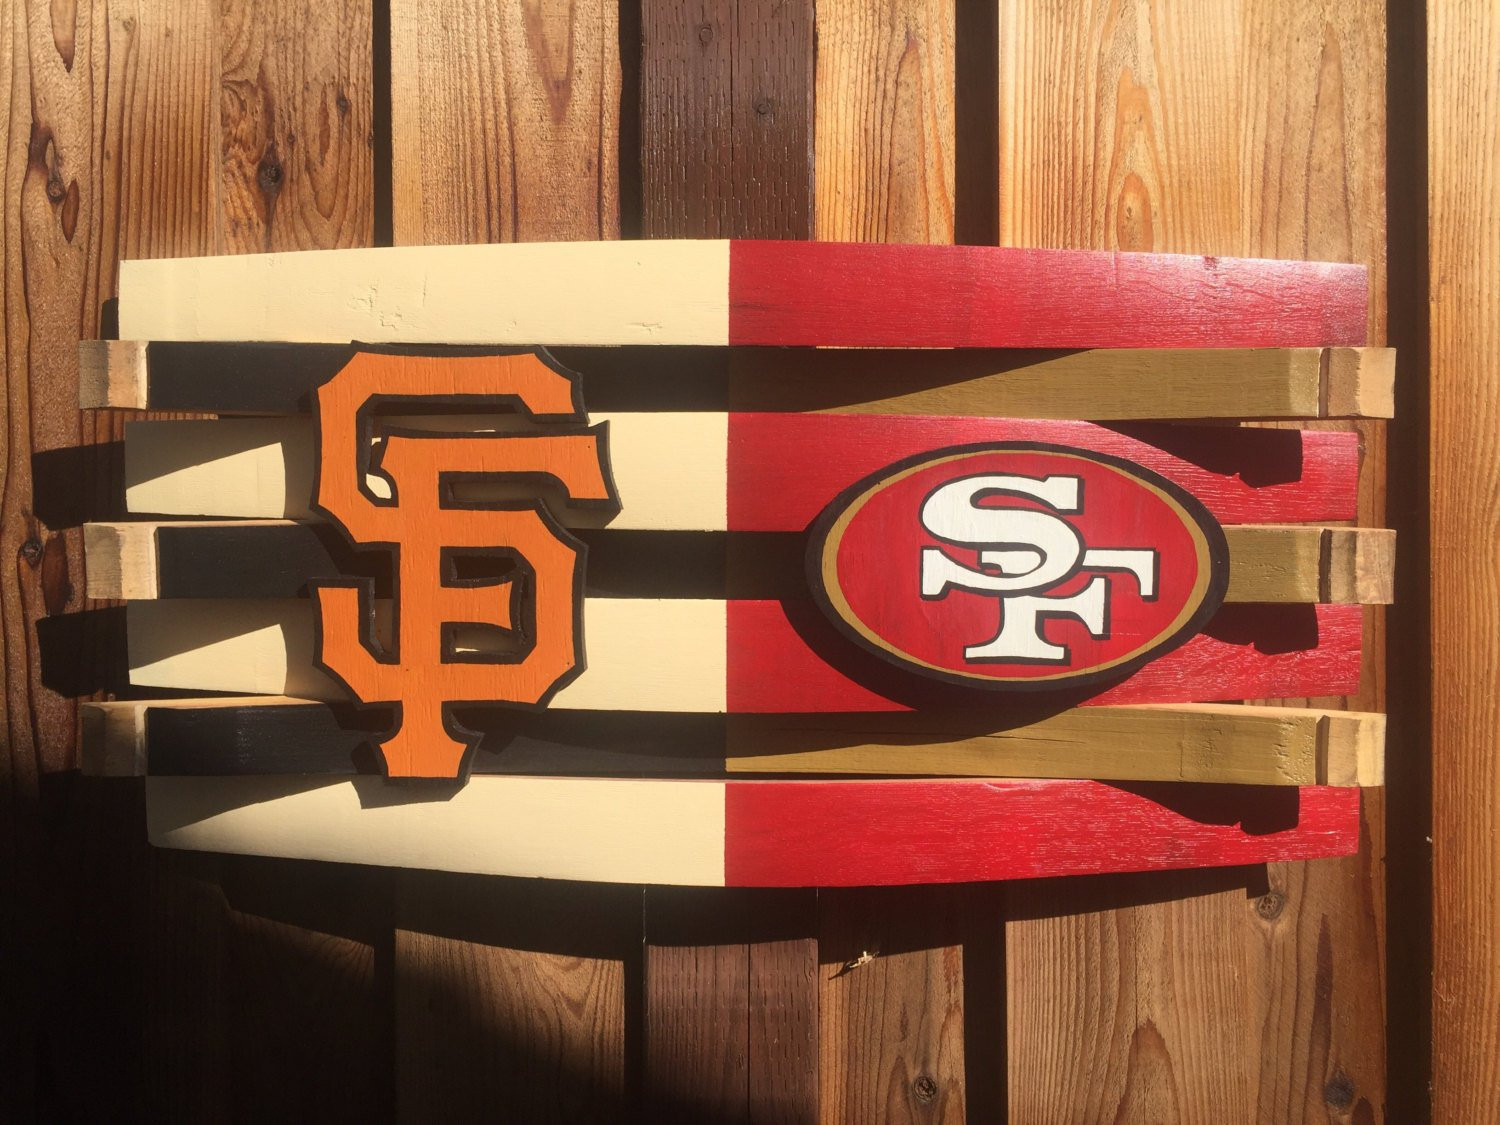 Best ideas about Giants Wall Art . Save or Pin Giants and 49ers Football Wall Decor Rustic Wooden Wall Art Now.